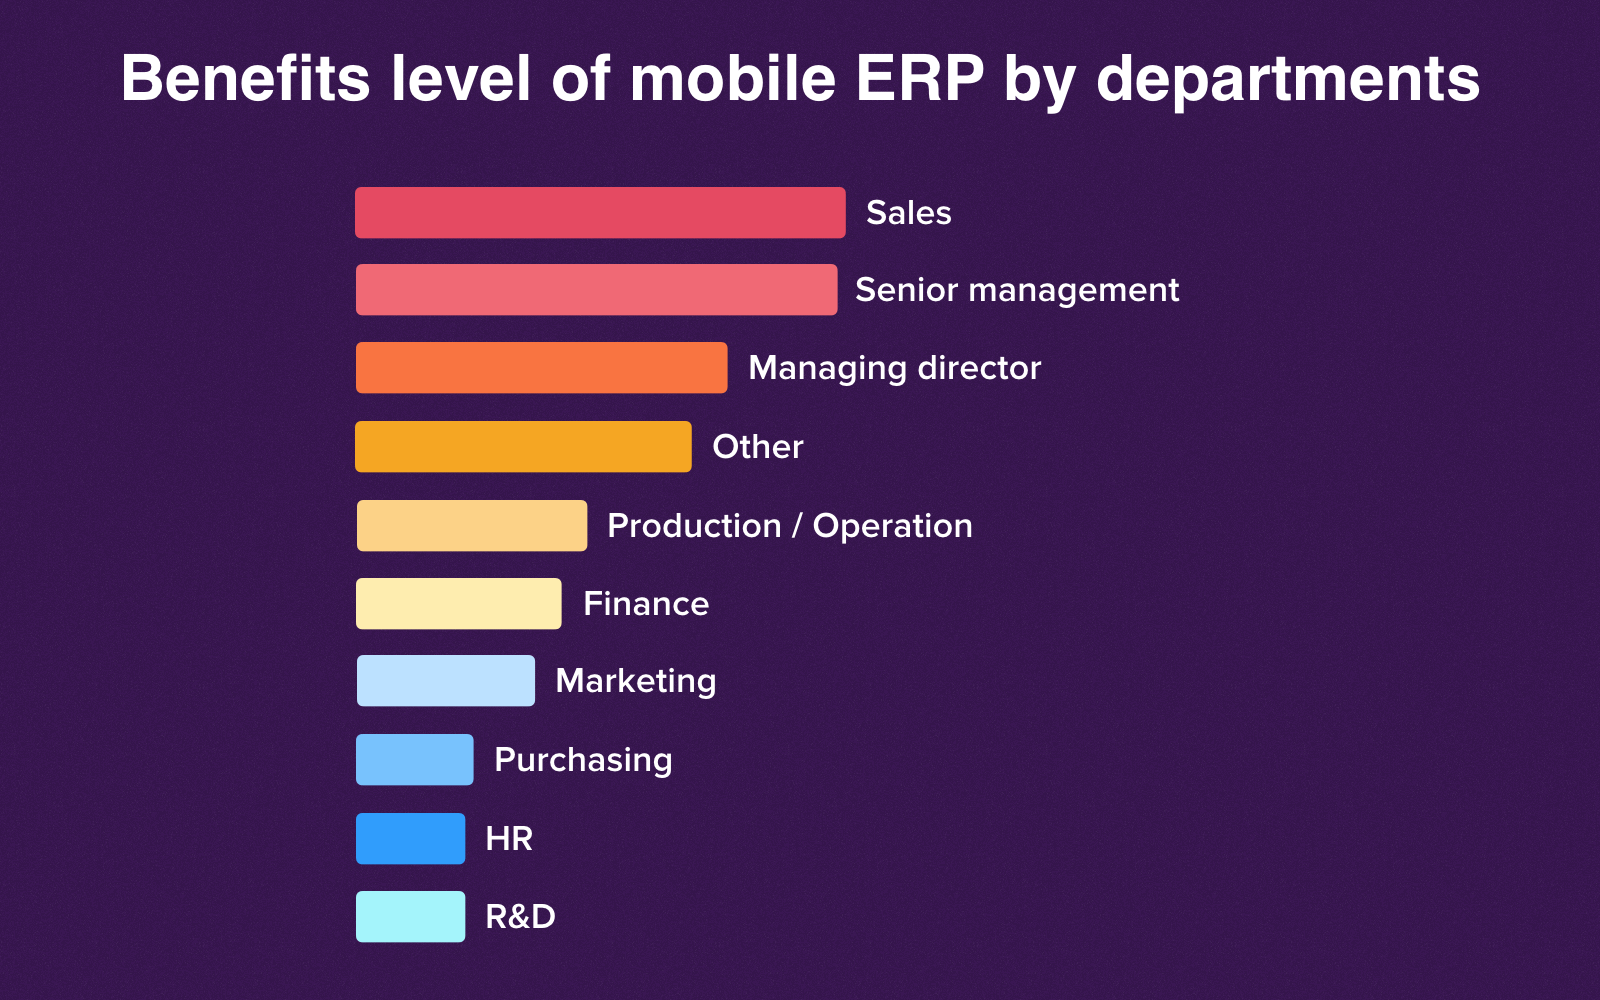 Departments that benefit most of all from mobile ERP solutions